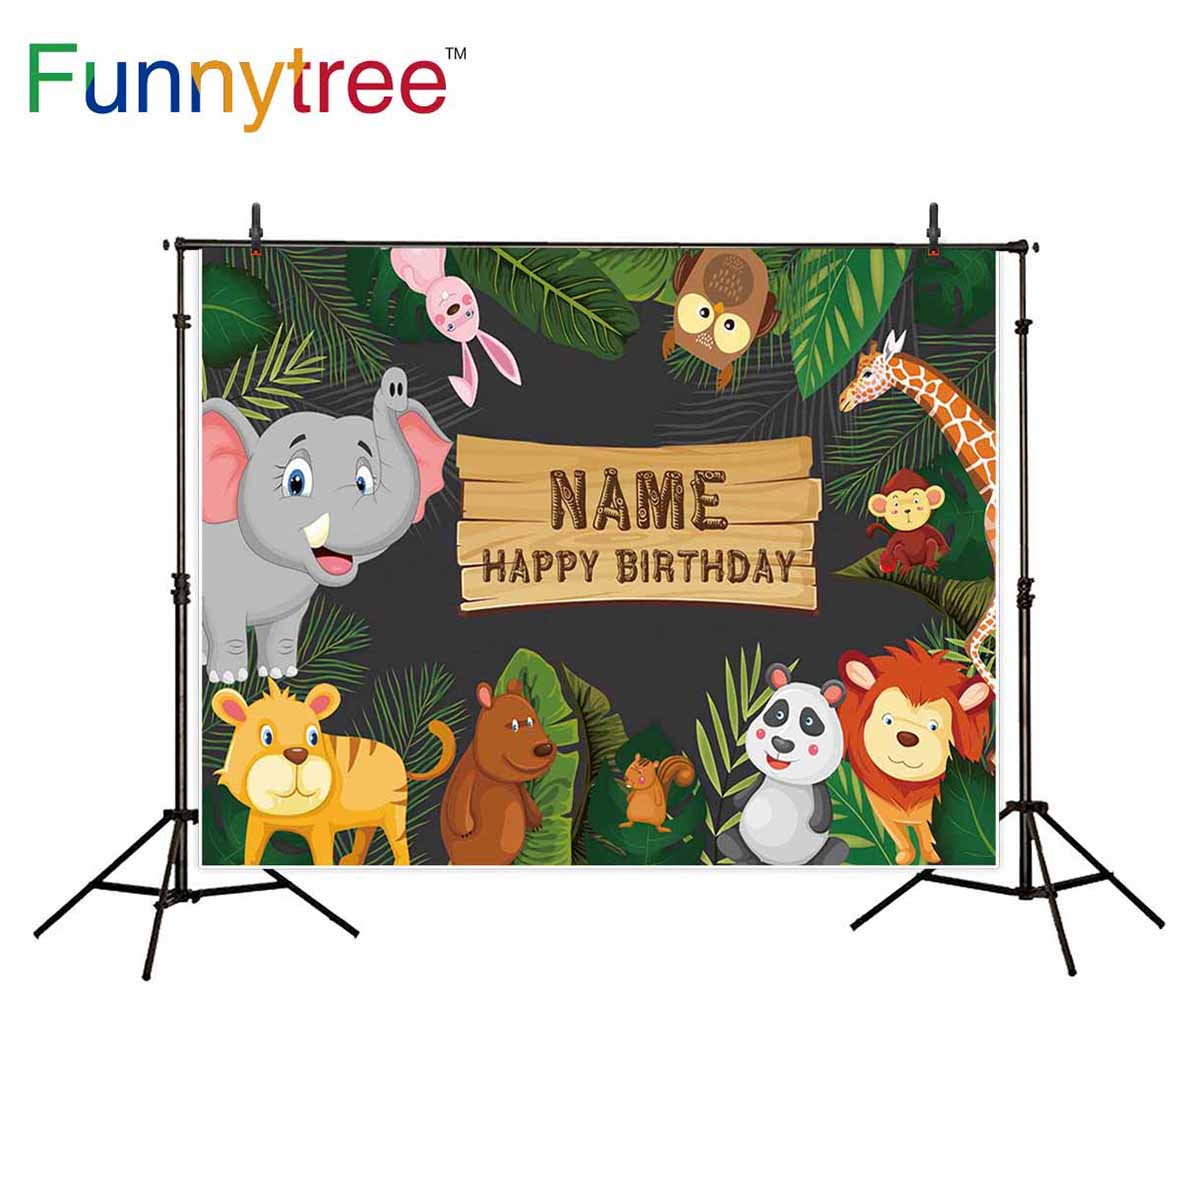 Funnytree birthday backgrounds for photography studio Jungle party animals cartoon leaves forest kid backdrop printed photocall funnytree prince photography background baby shower royal blue crown damask birthday backdrop photocall photo studio printed